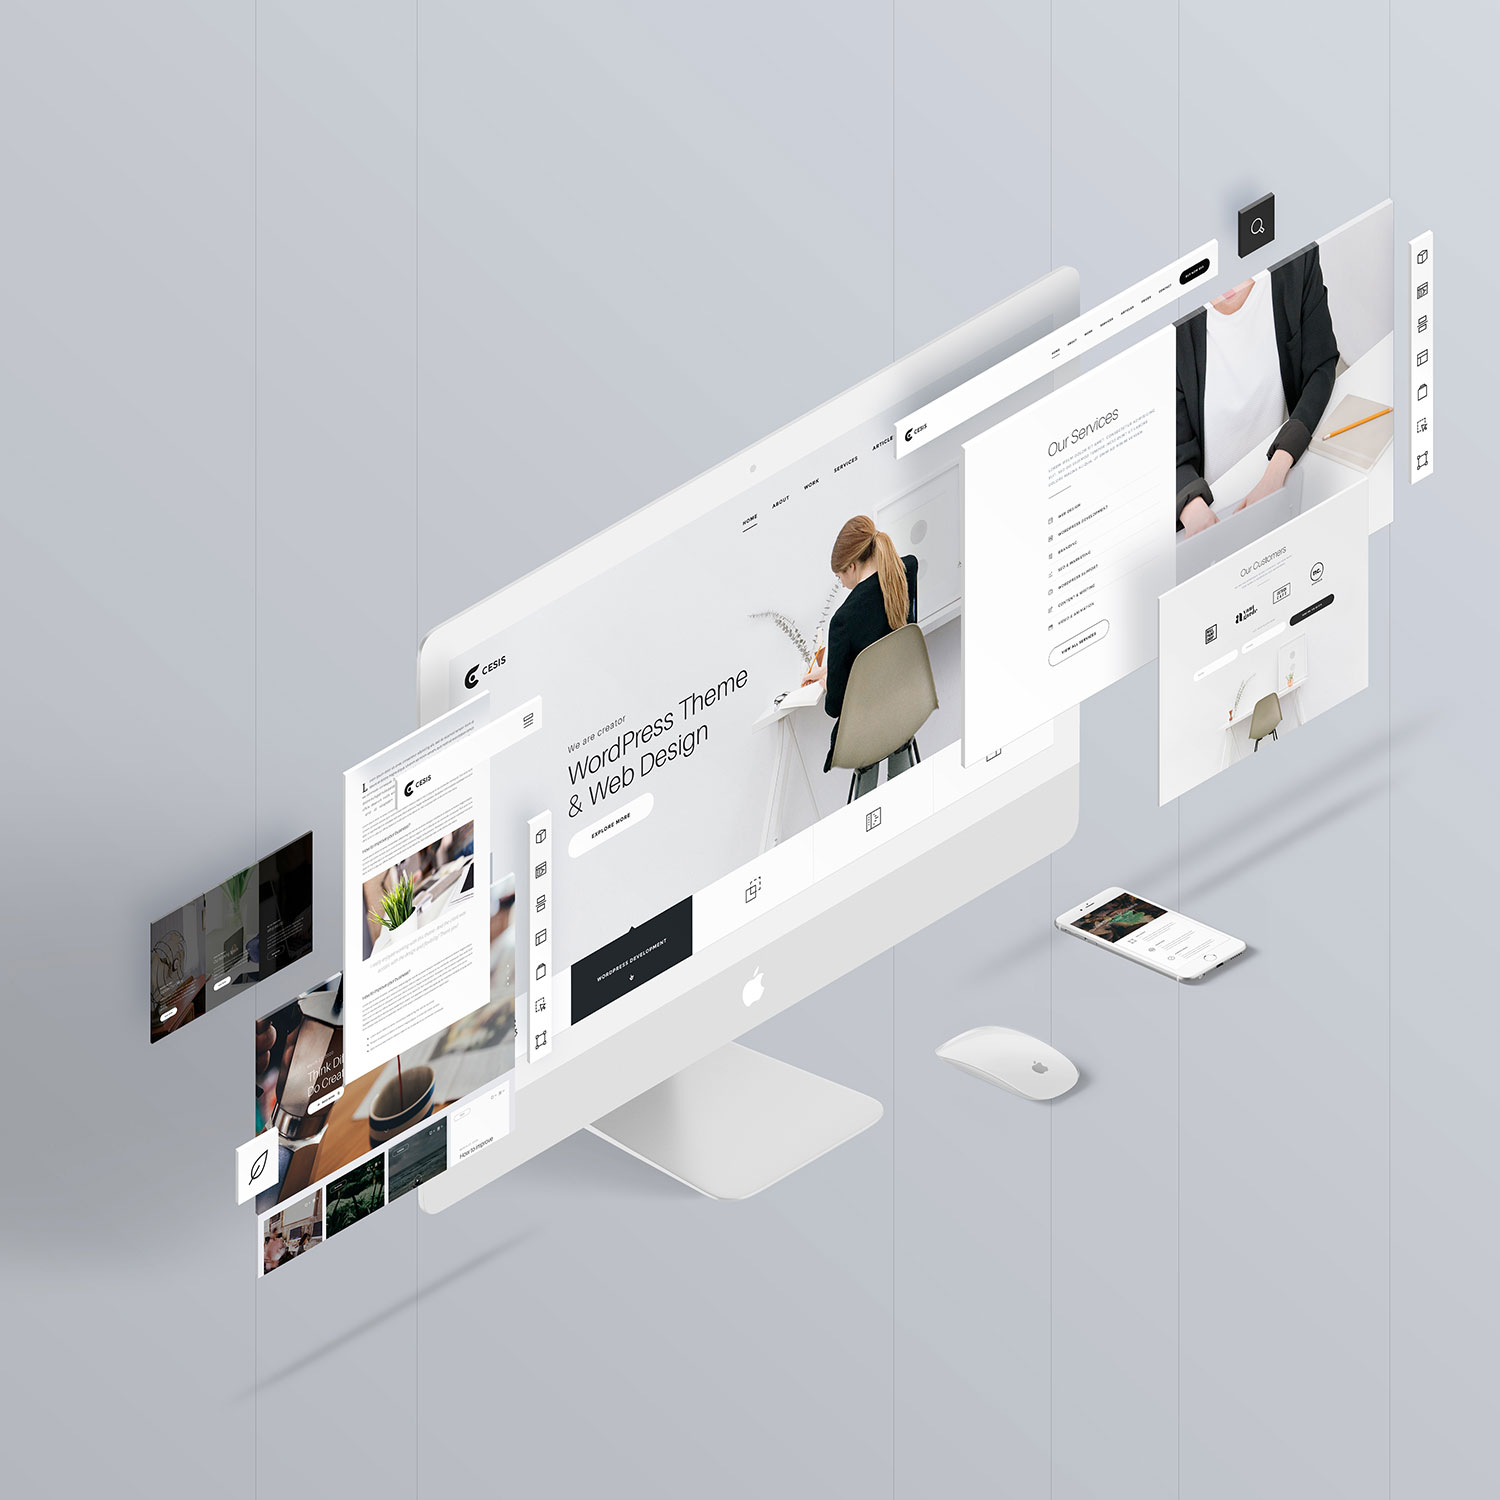 Free Perspective Psd Mockup Template Free Mockup Psd Mockup Template Website Mockup Mockup Psd